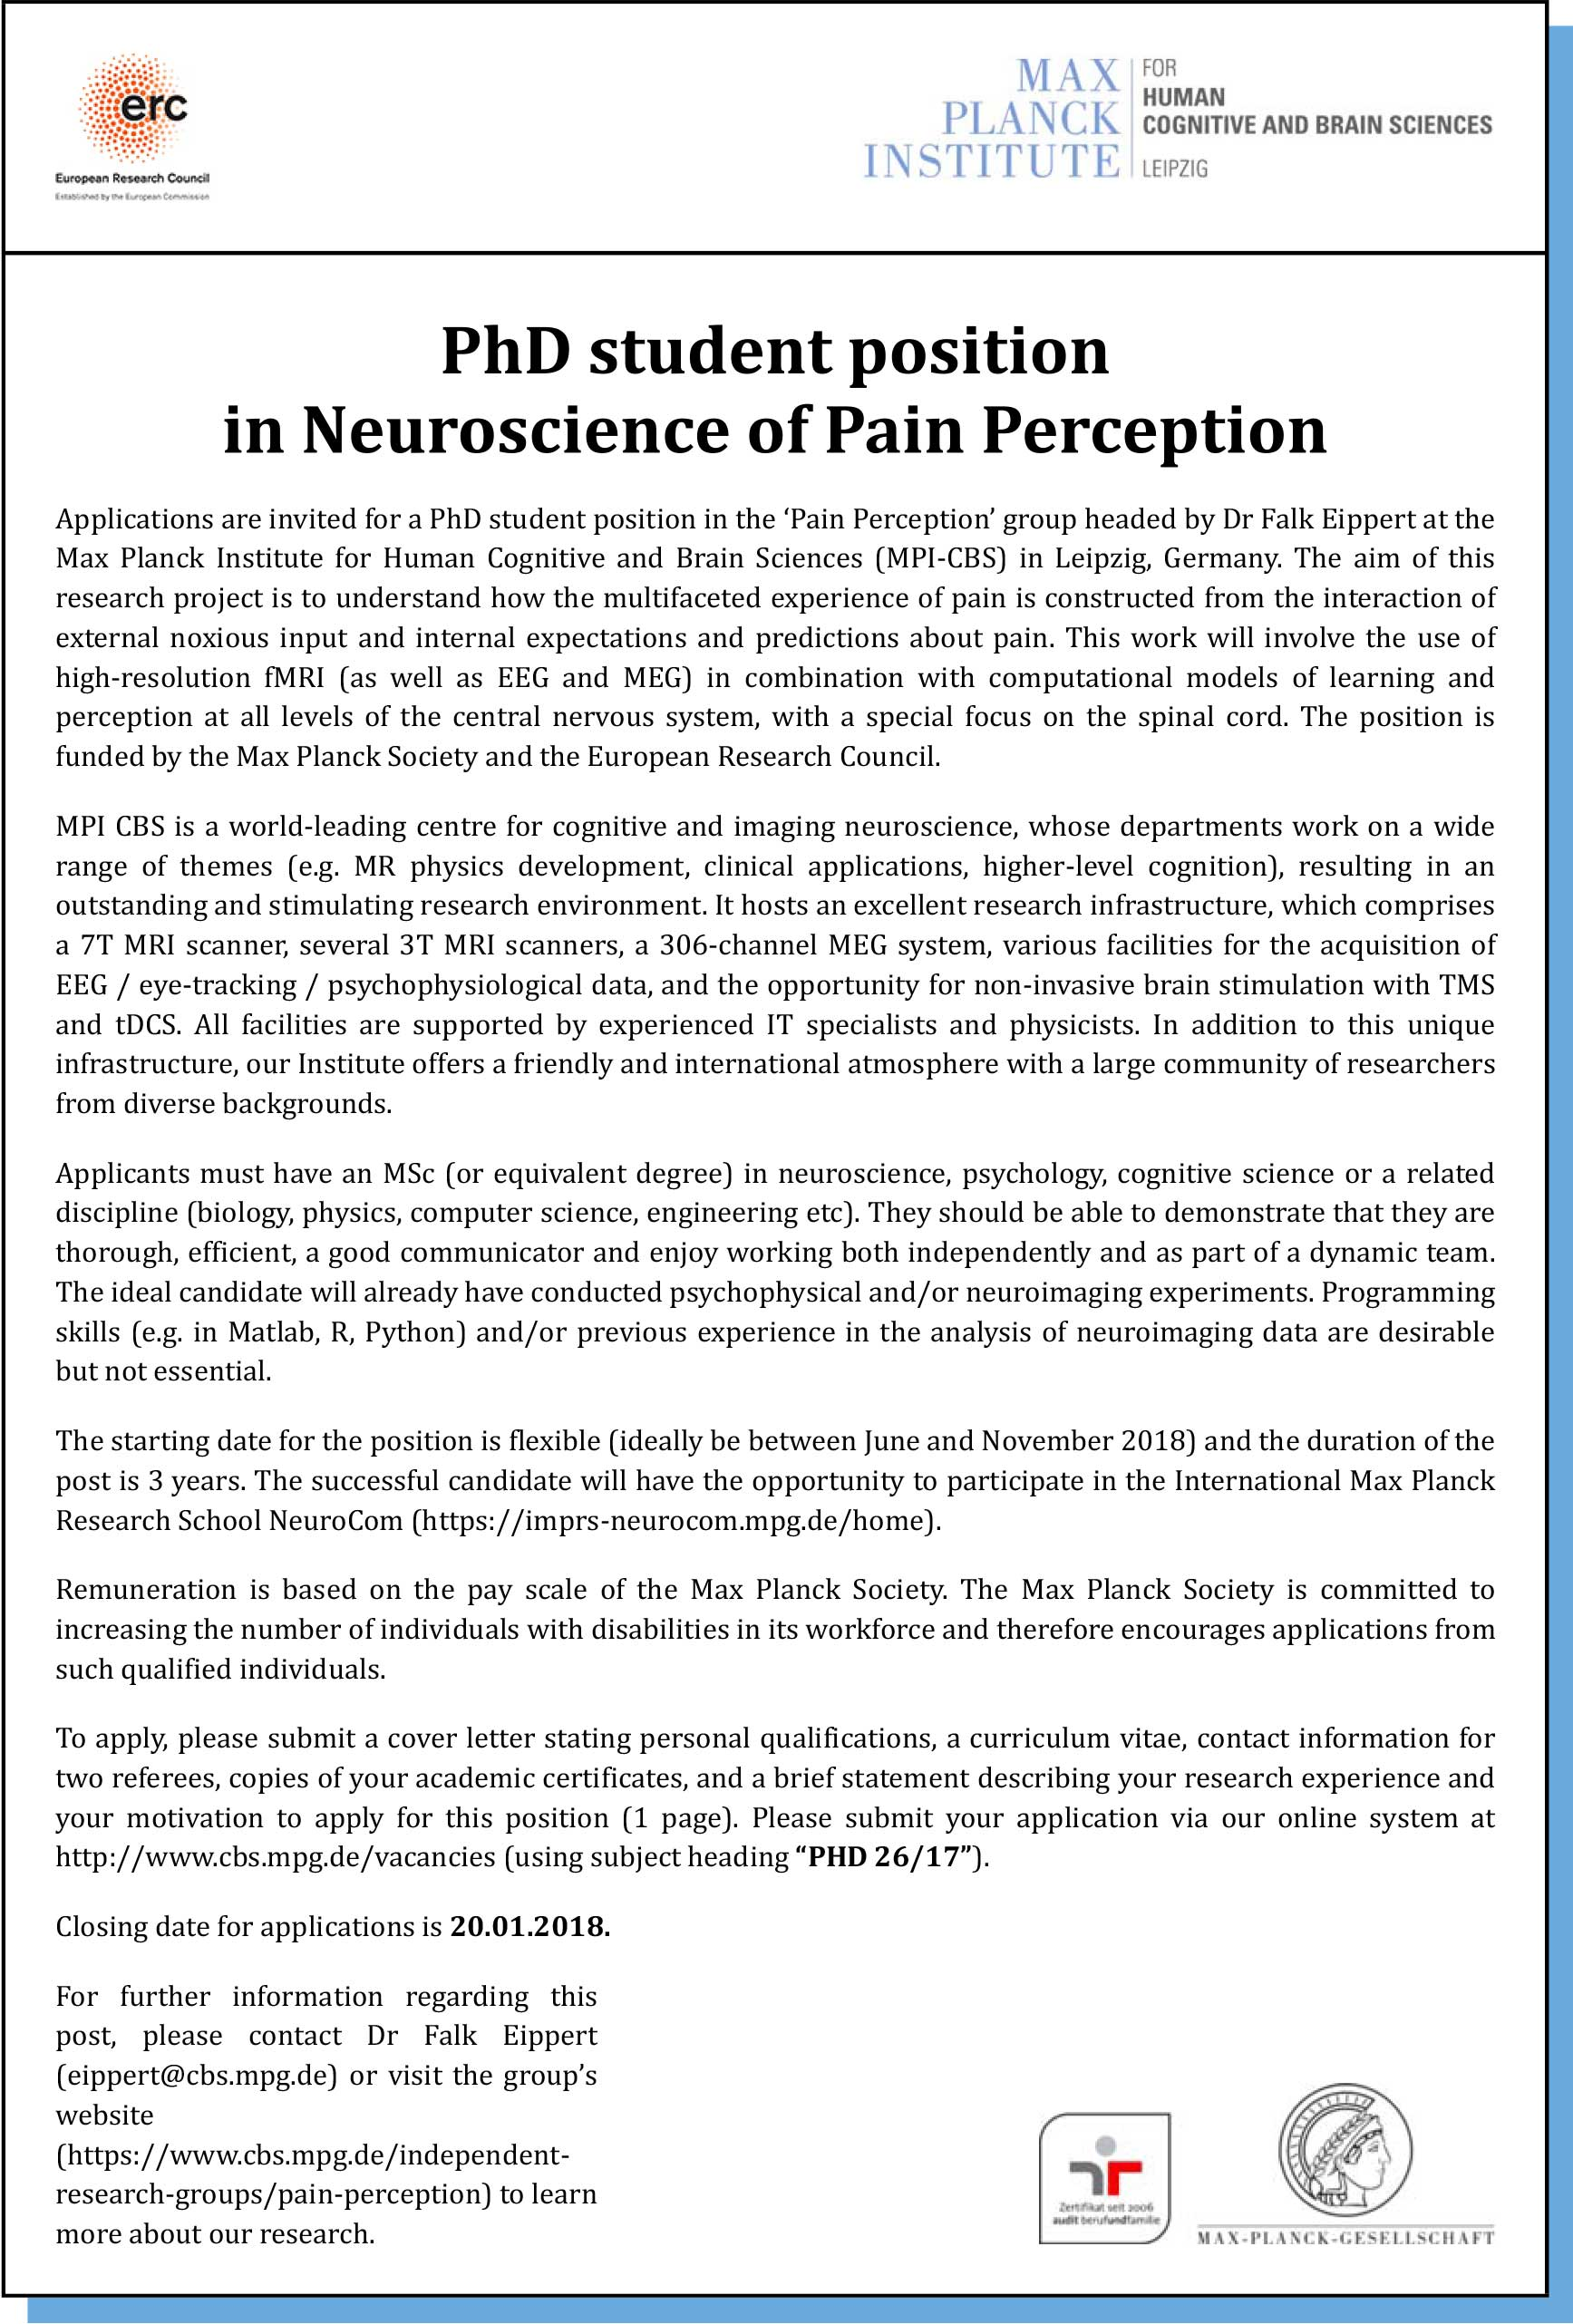 PhD student position in Neuroscience of Pain Perception